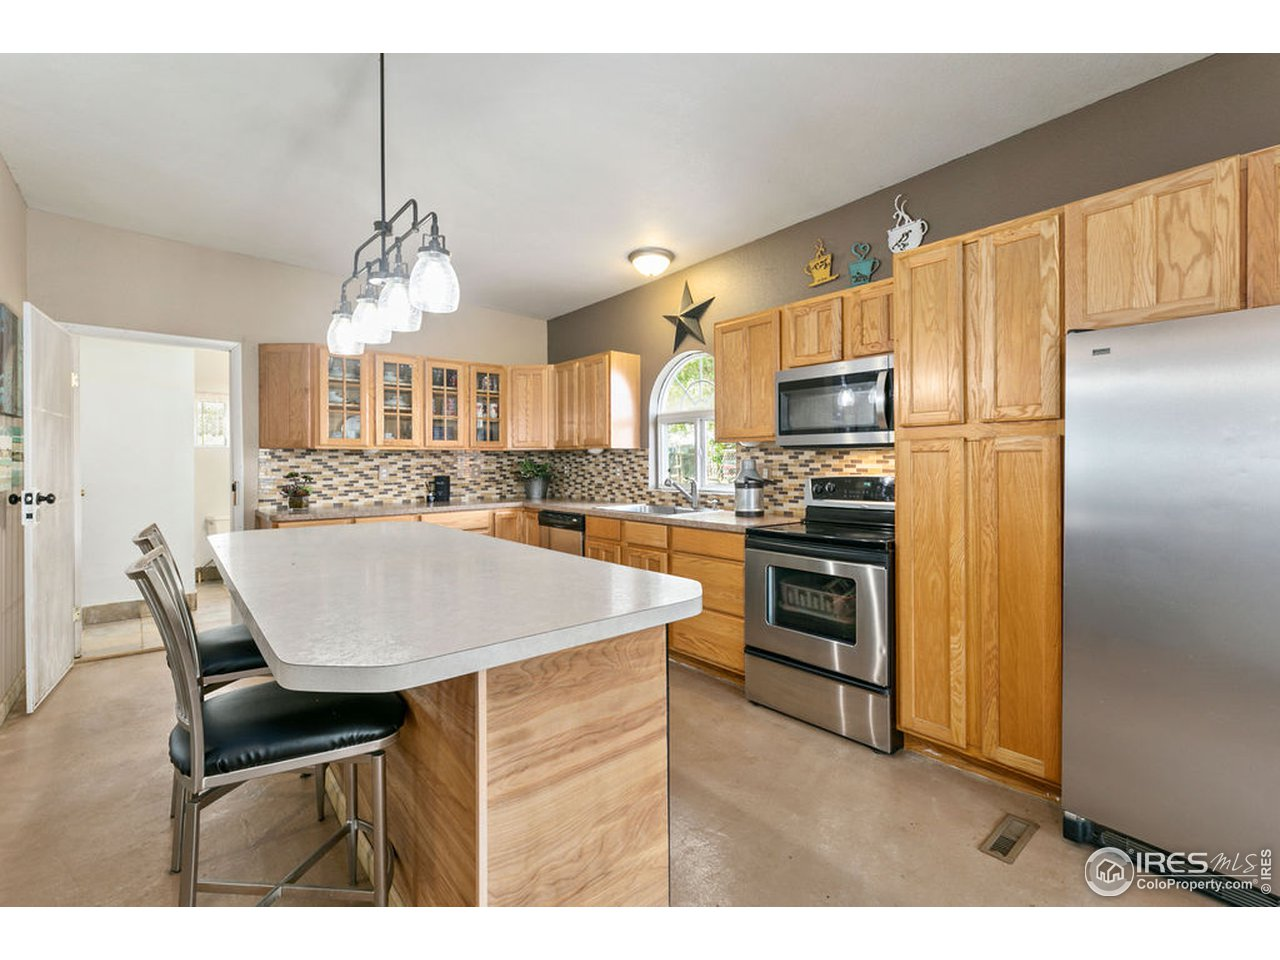 Lots of workspace and cabinet space greet you in the comfortable kitchen.